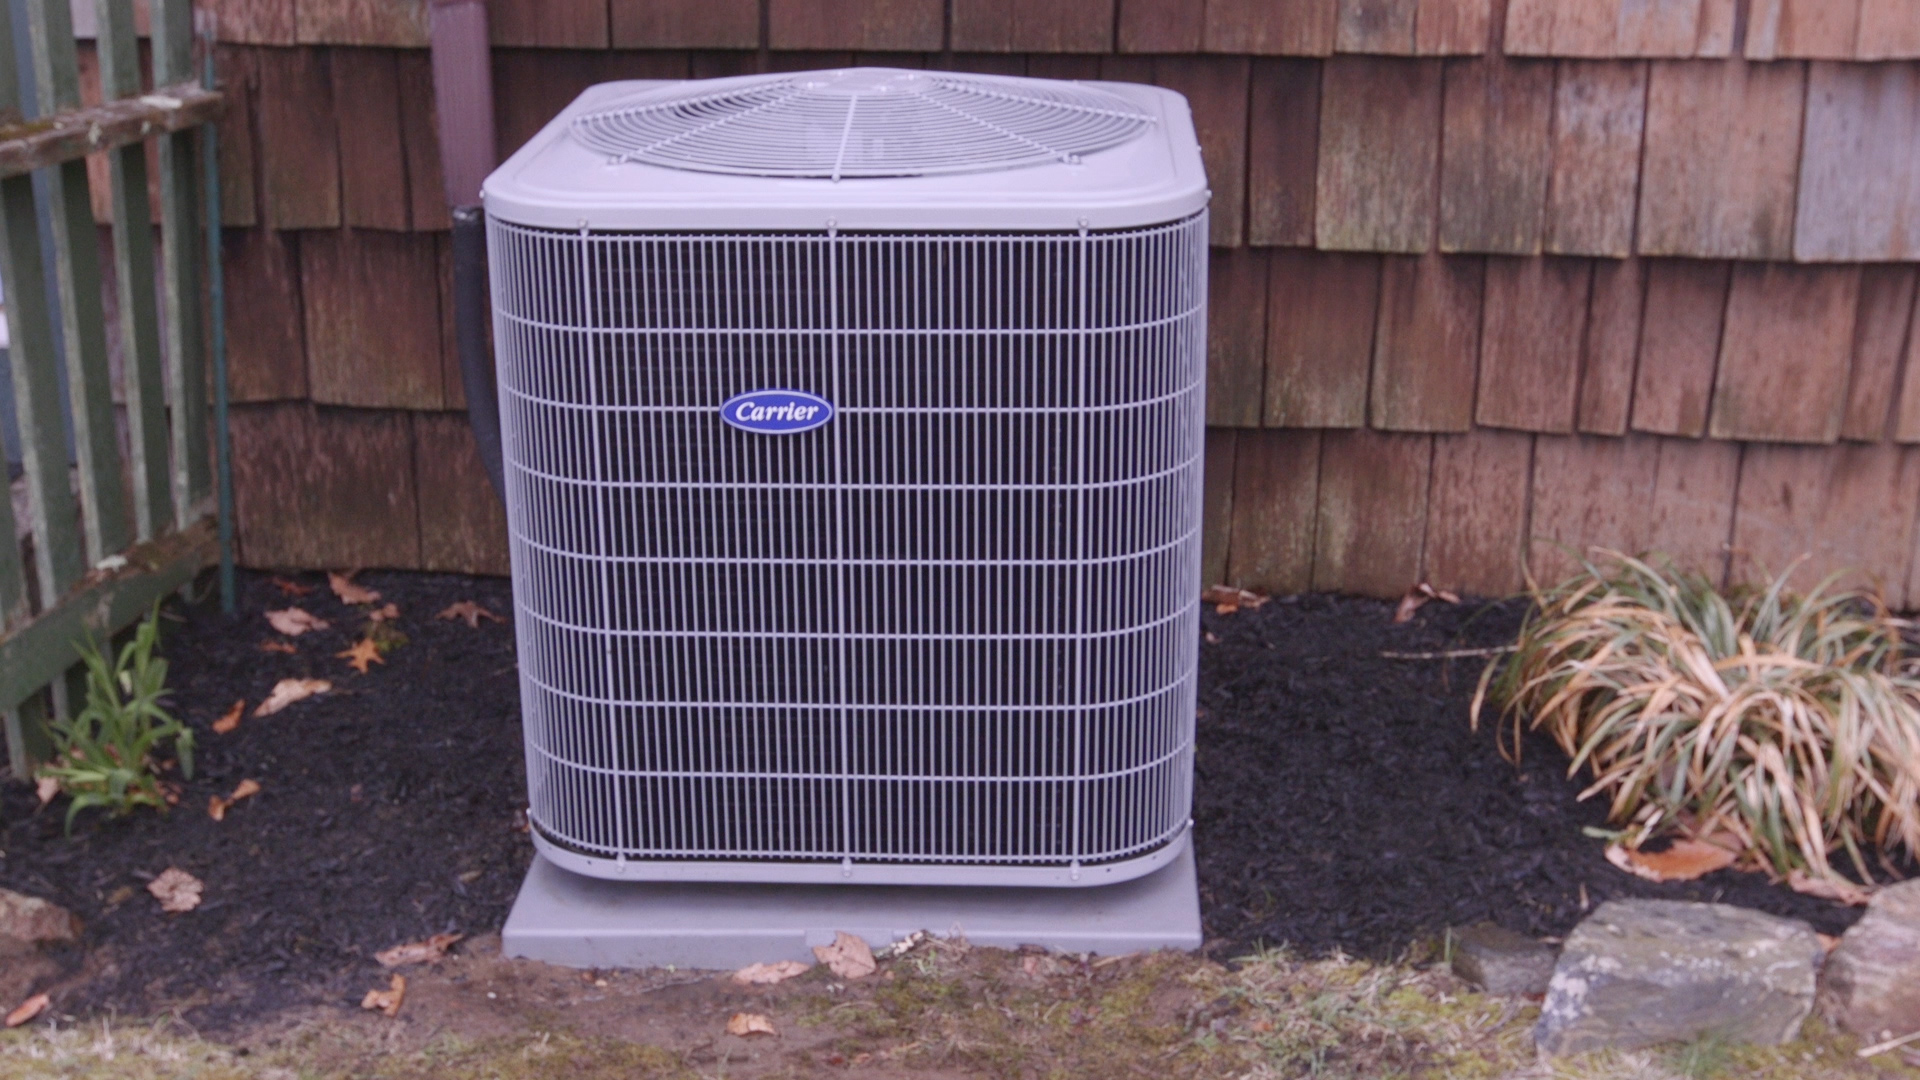 3 5 Ton Ac Unit >> How to Size a Window Air Conditioner - Consumer Reports